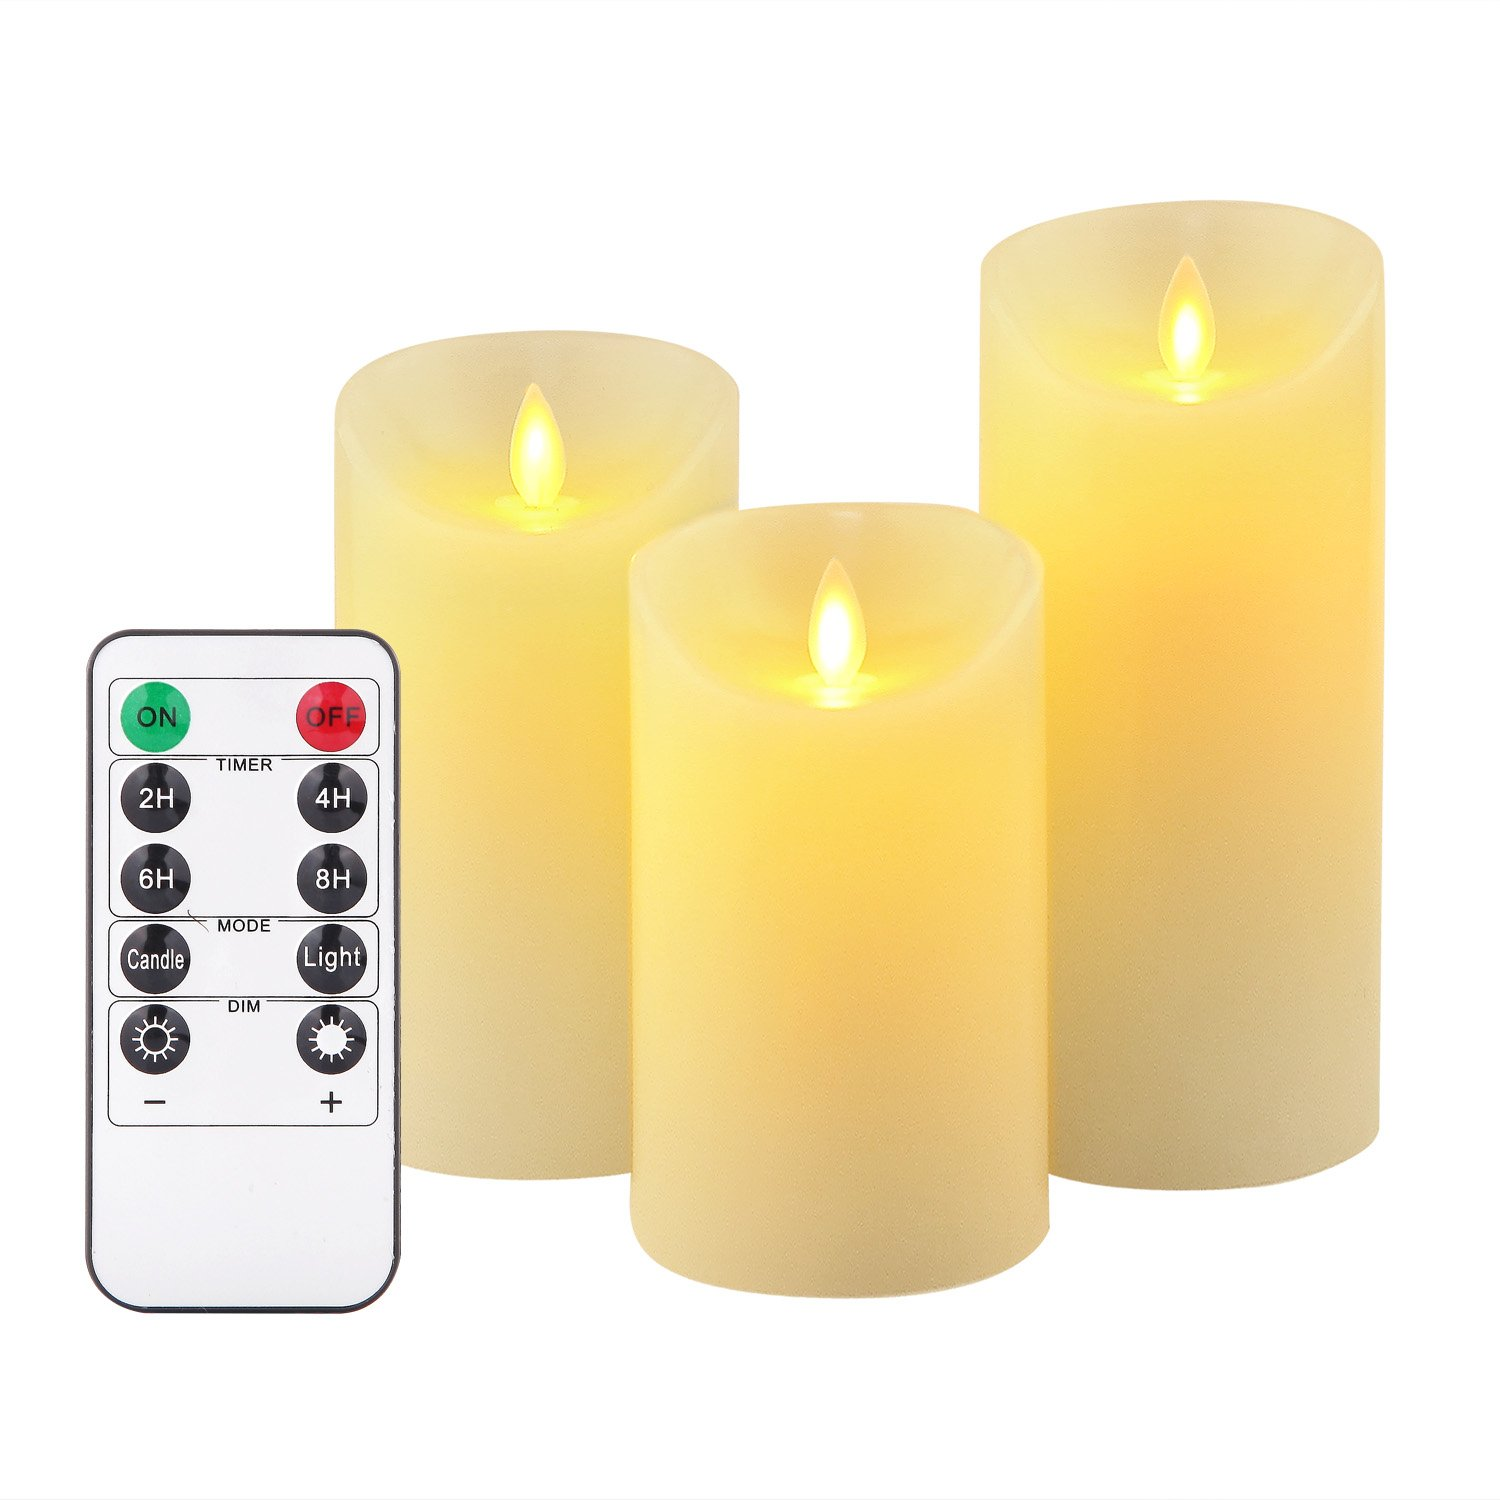 OShine Flameless Candles,LED Candles Set of 4 5'' 6'' H(3.15'' D) Flickering Flame with Remote and Timer Real Wax Pillar | Bathroom, Kitchen, Home Decoration | 10-Key Control | Reusable, 31, Ivory (31)